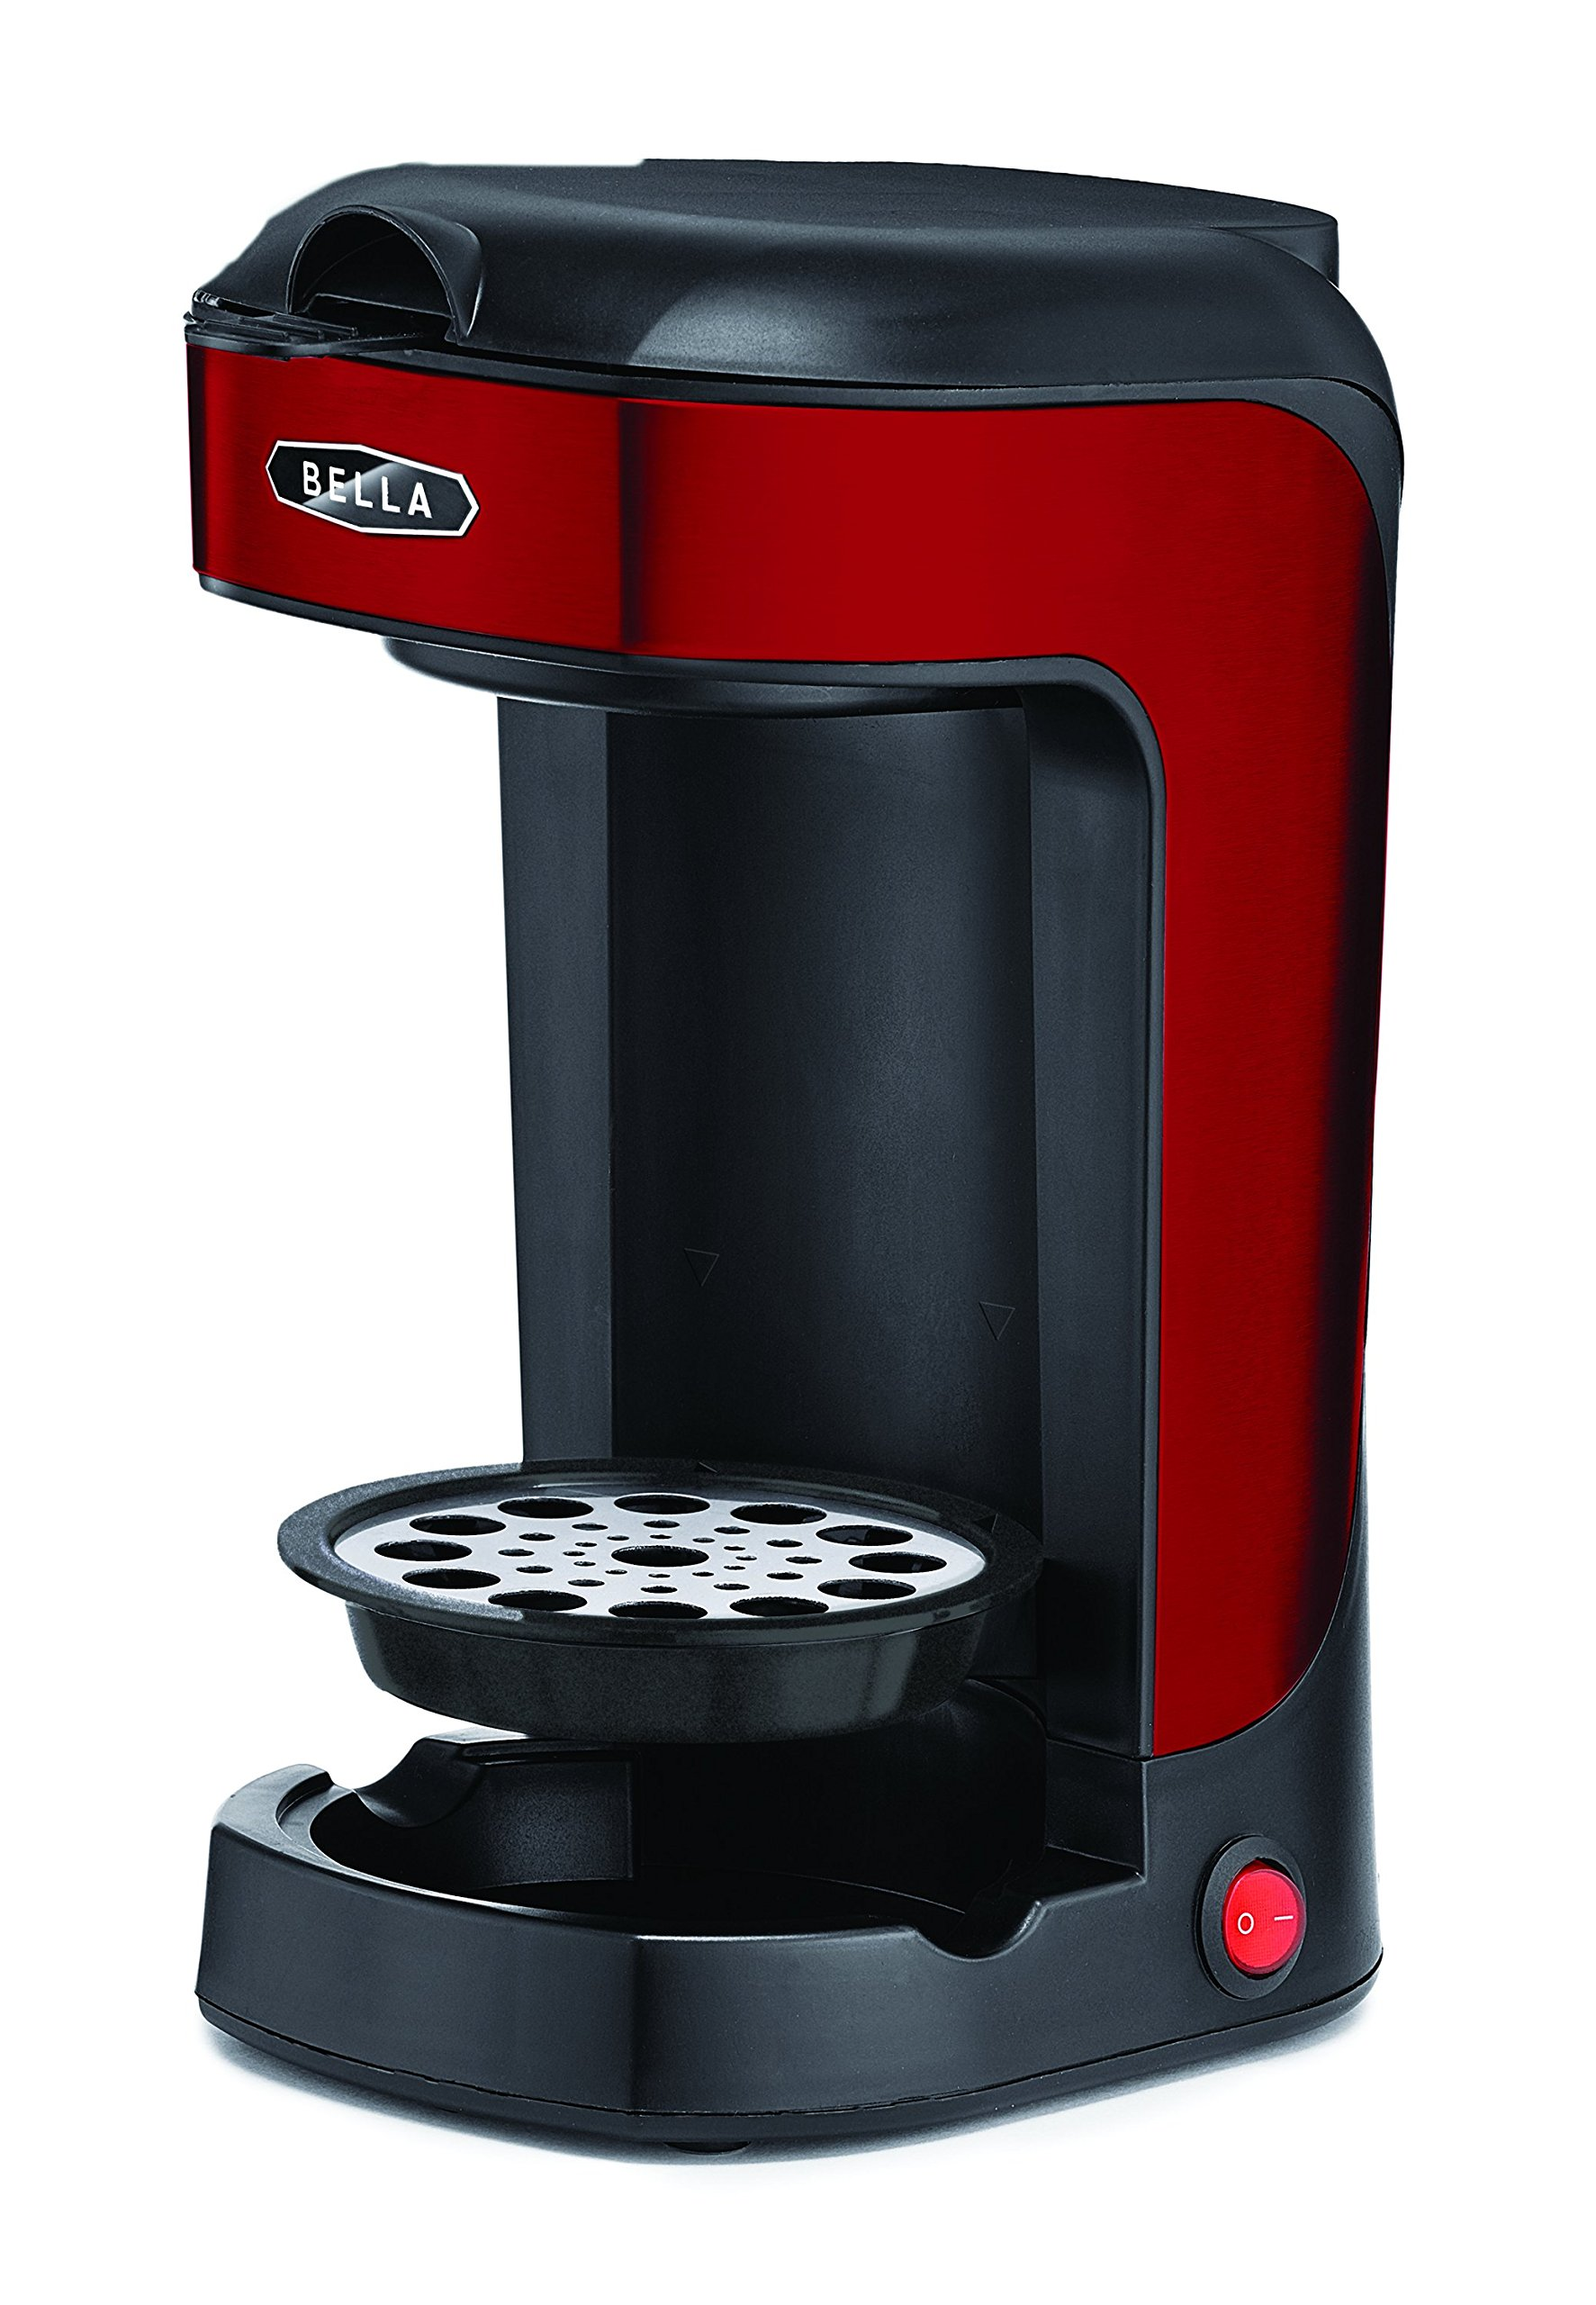 Bella BLA14485 One Scoop One Cup Coffee Maker, Red and Stainless Steel by BELLA